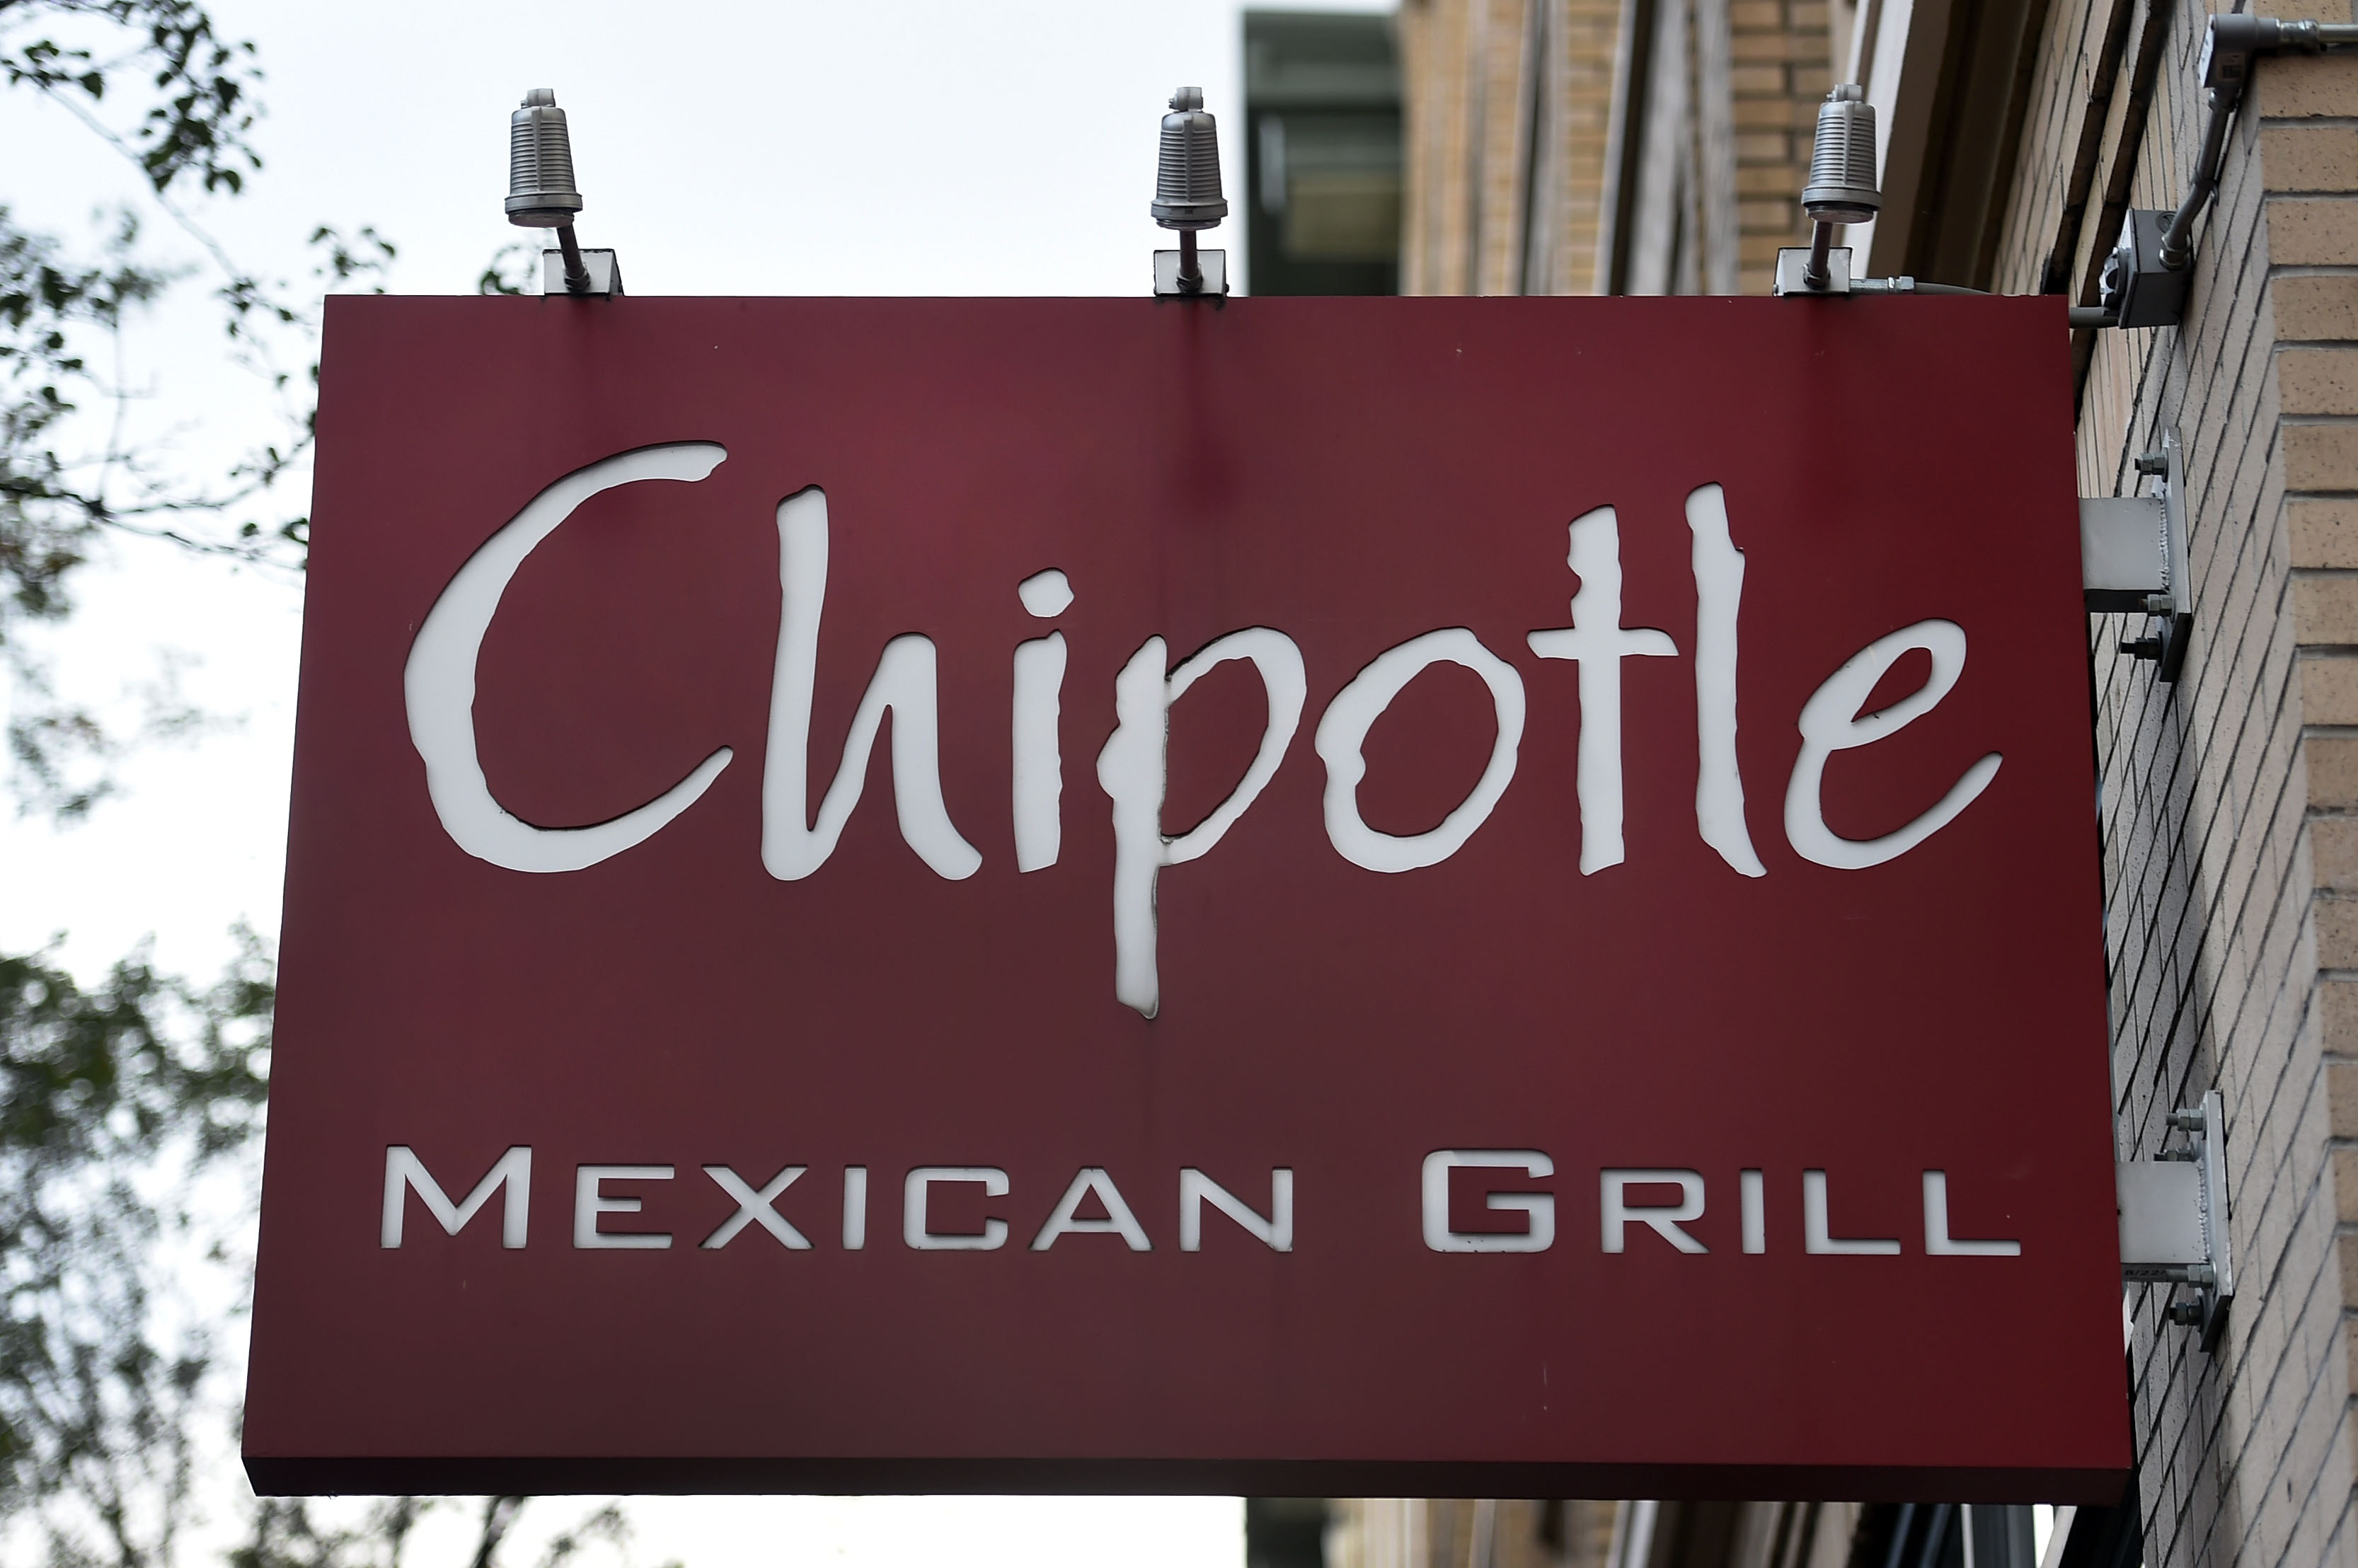 Chipotle's Recovery Plan, Explained in Five Easy Steps